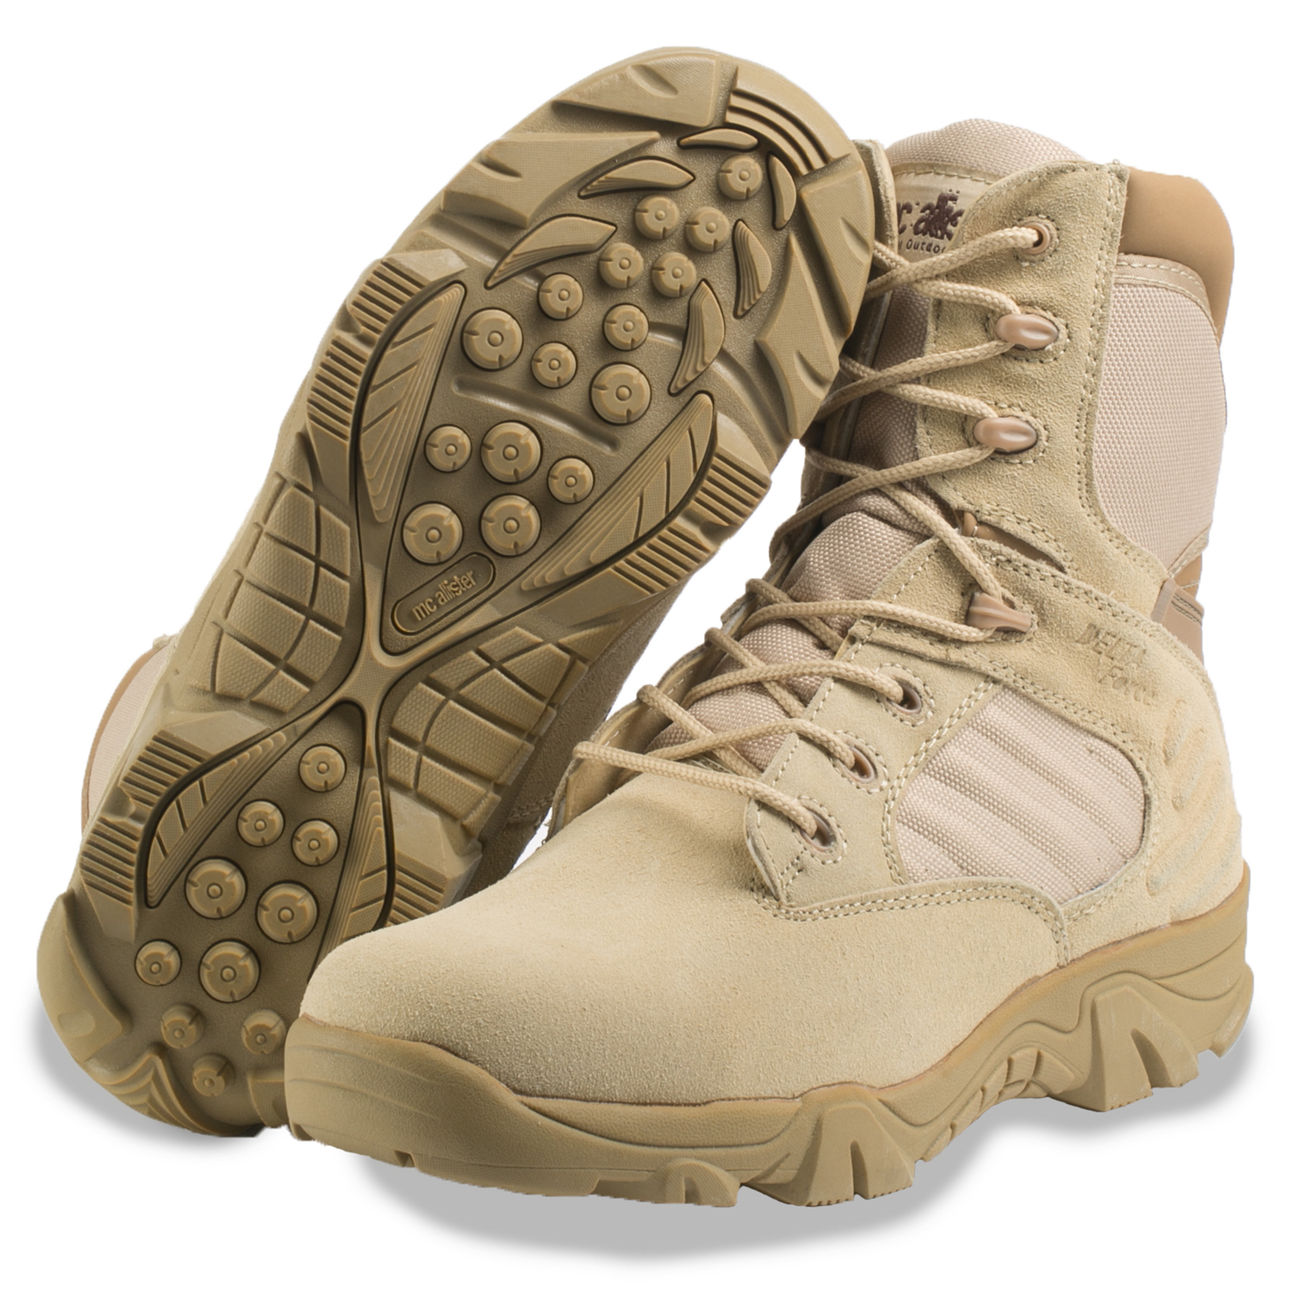 McAllister Stiefel Delta Force Tactical Outdoor Boots khaki 1